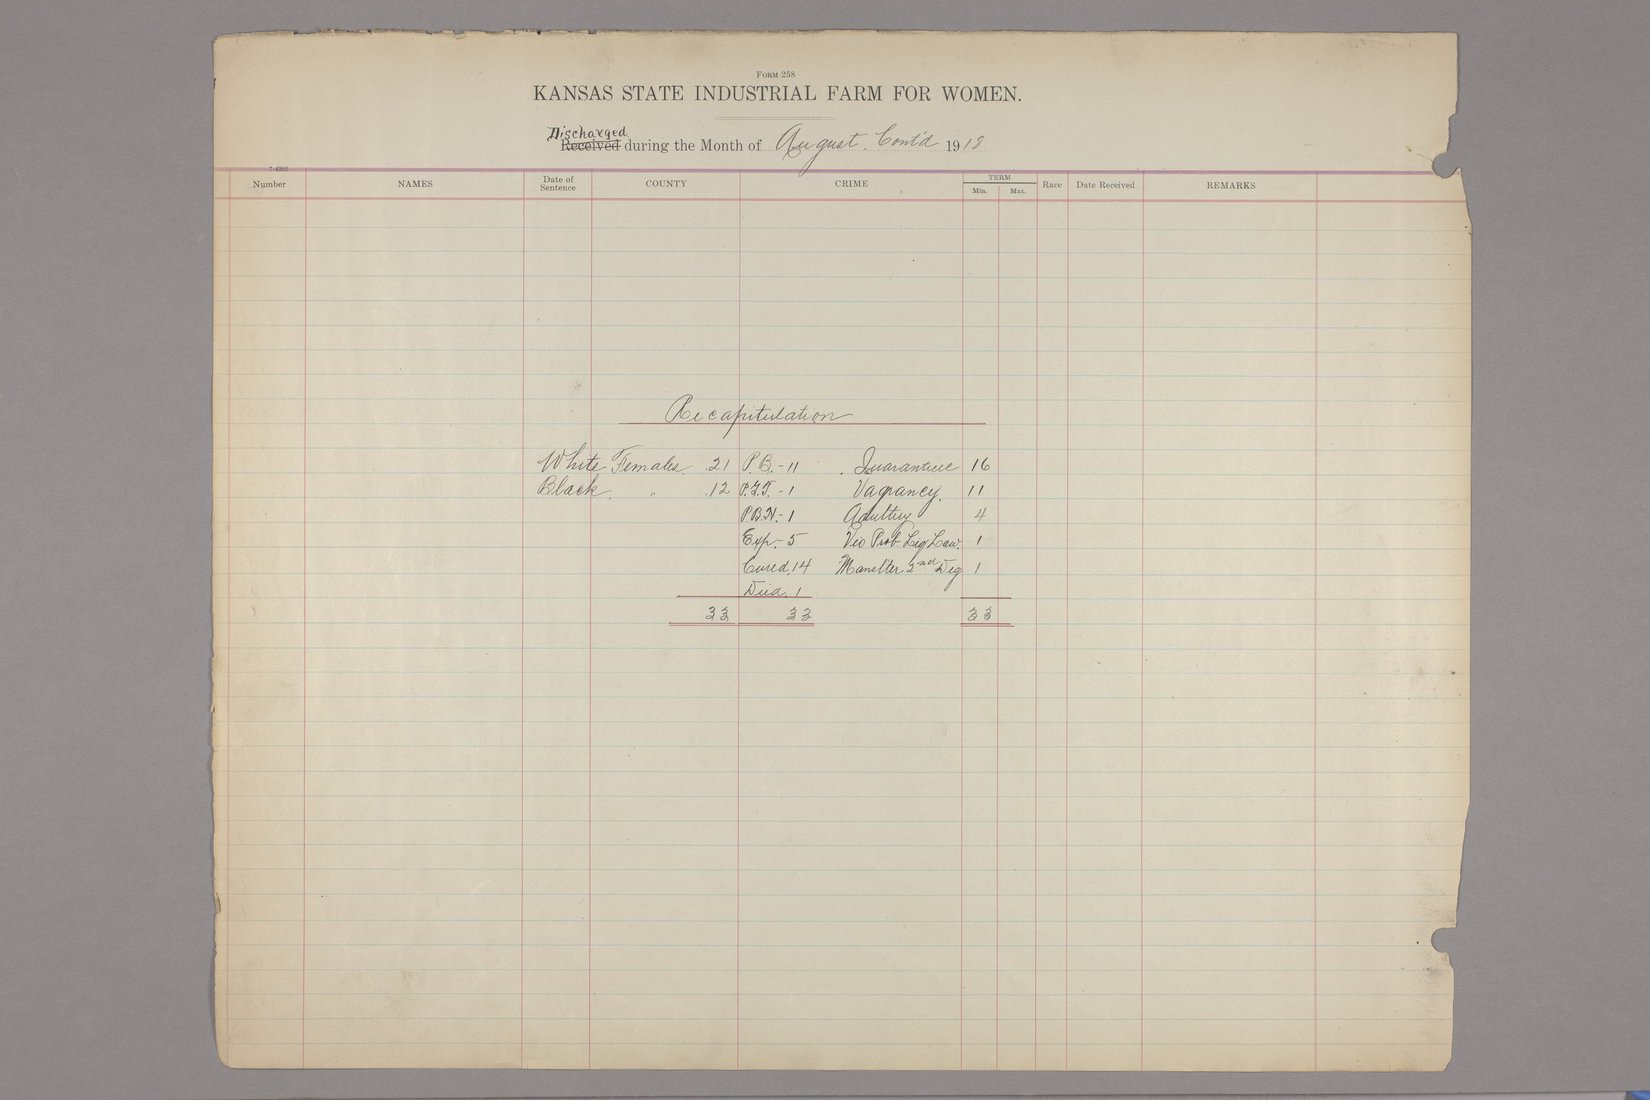 Inmates discharged register, Kansas State Industrial Farm for Women - August, 1918 & recapitulation page